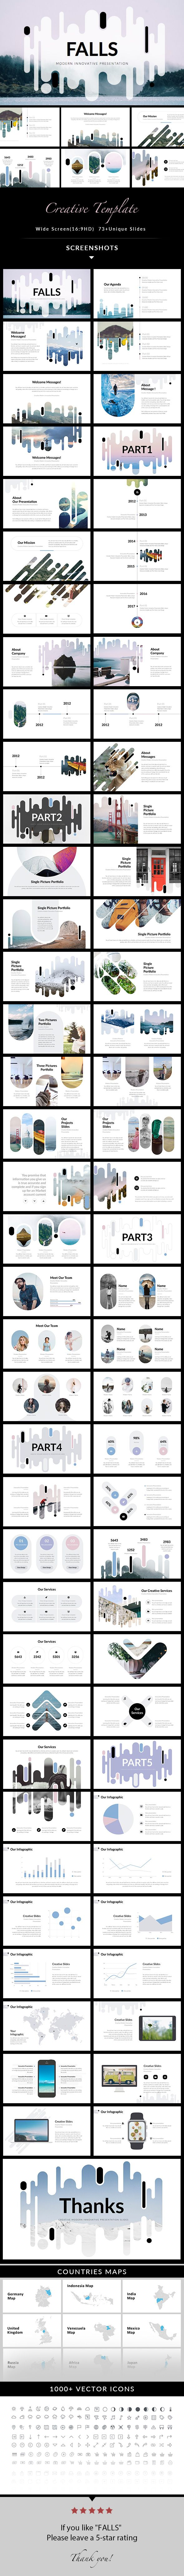 Falls creative powerpoint template diagramao falls creative powerpoint template toneelgroepblik Images